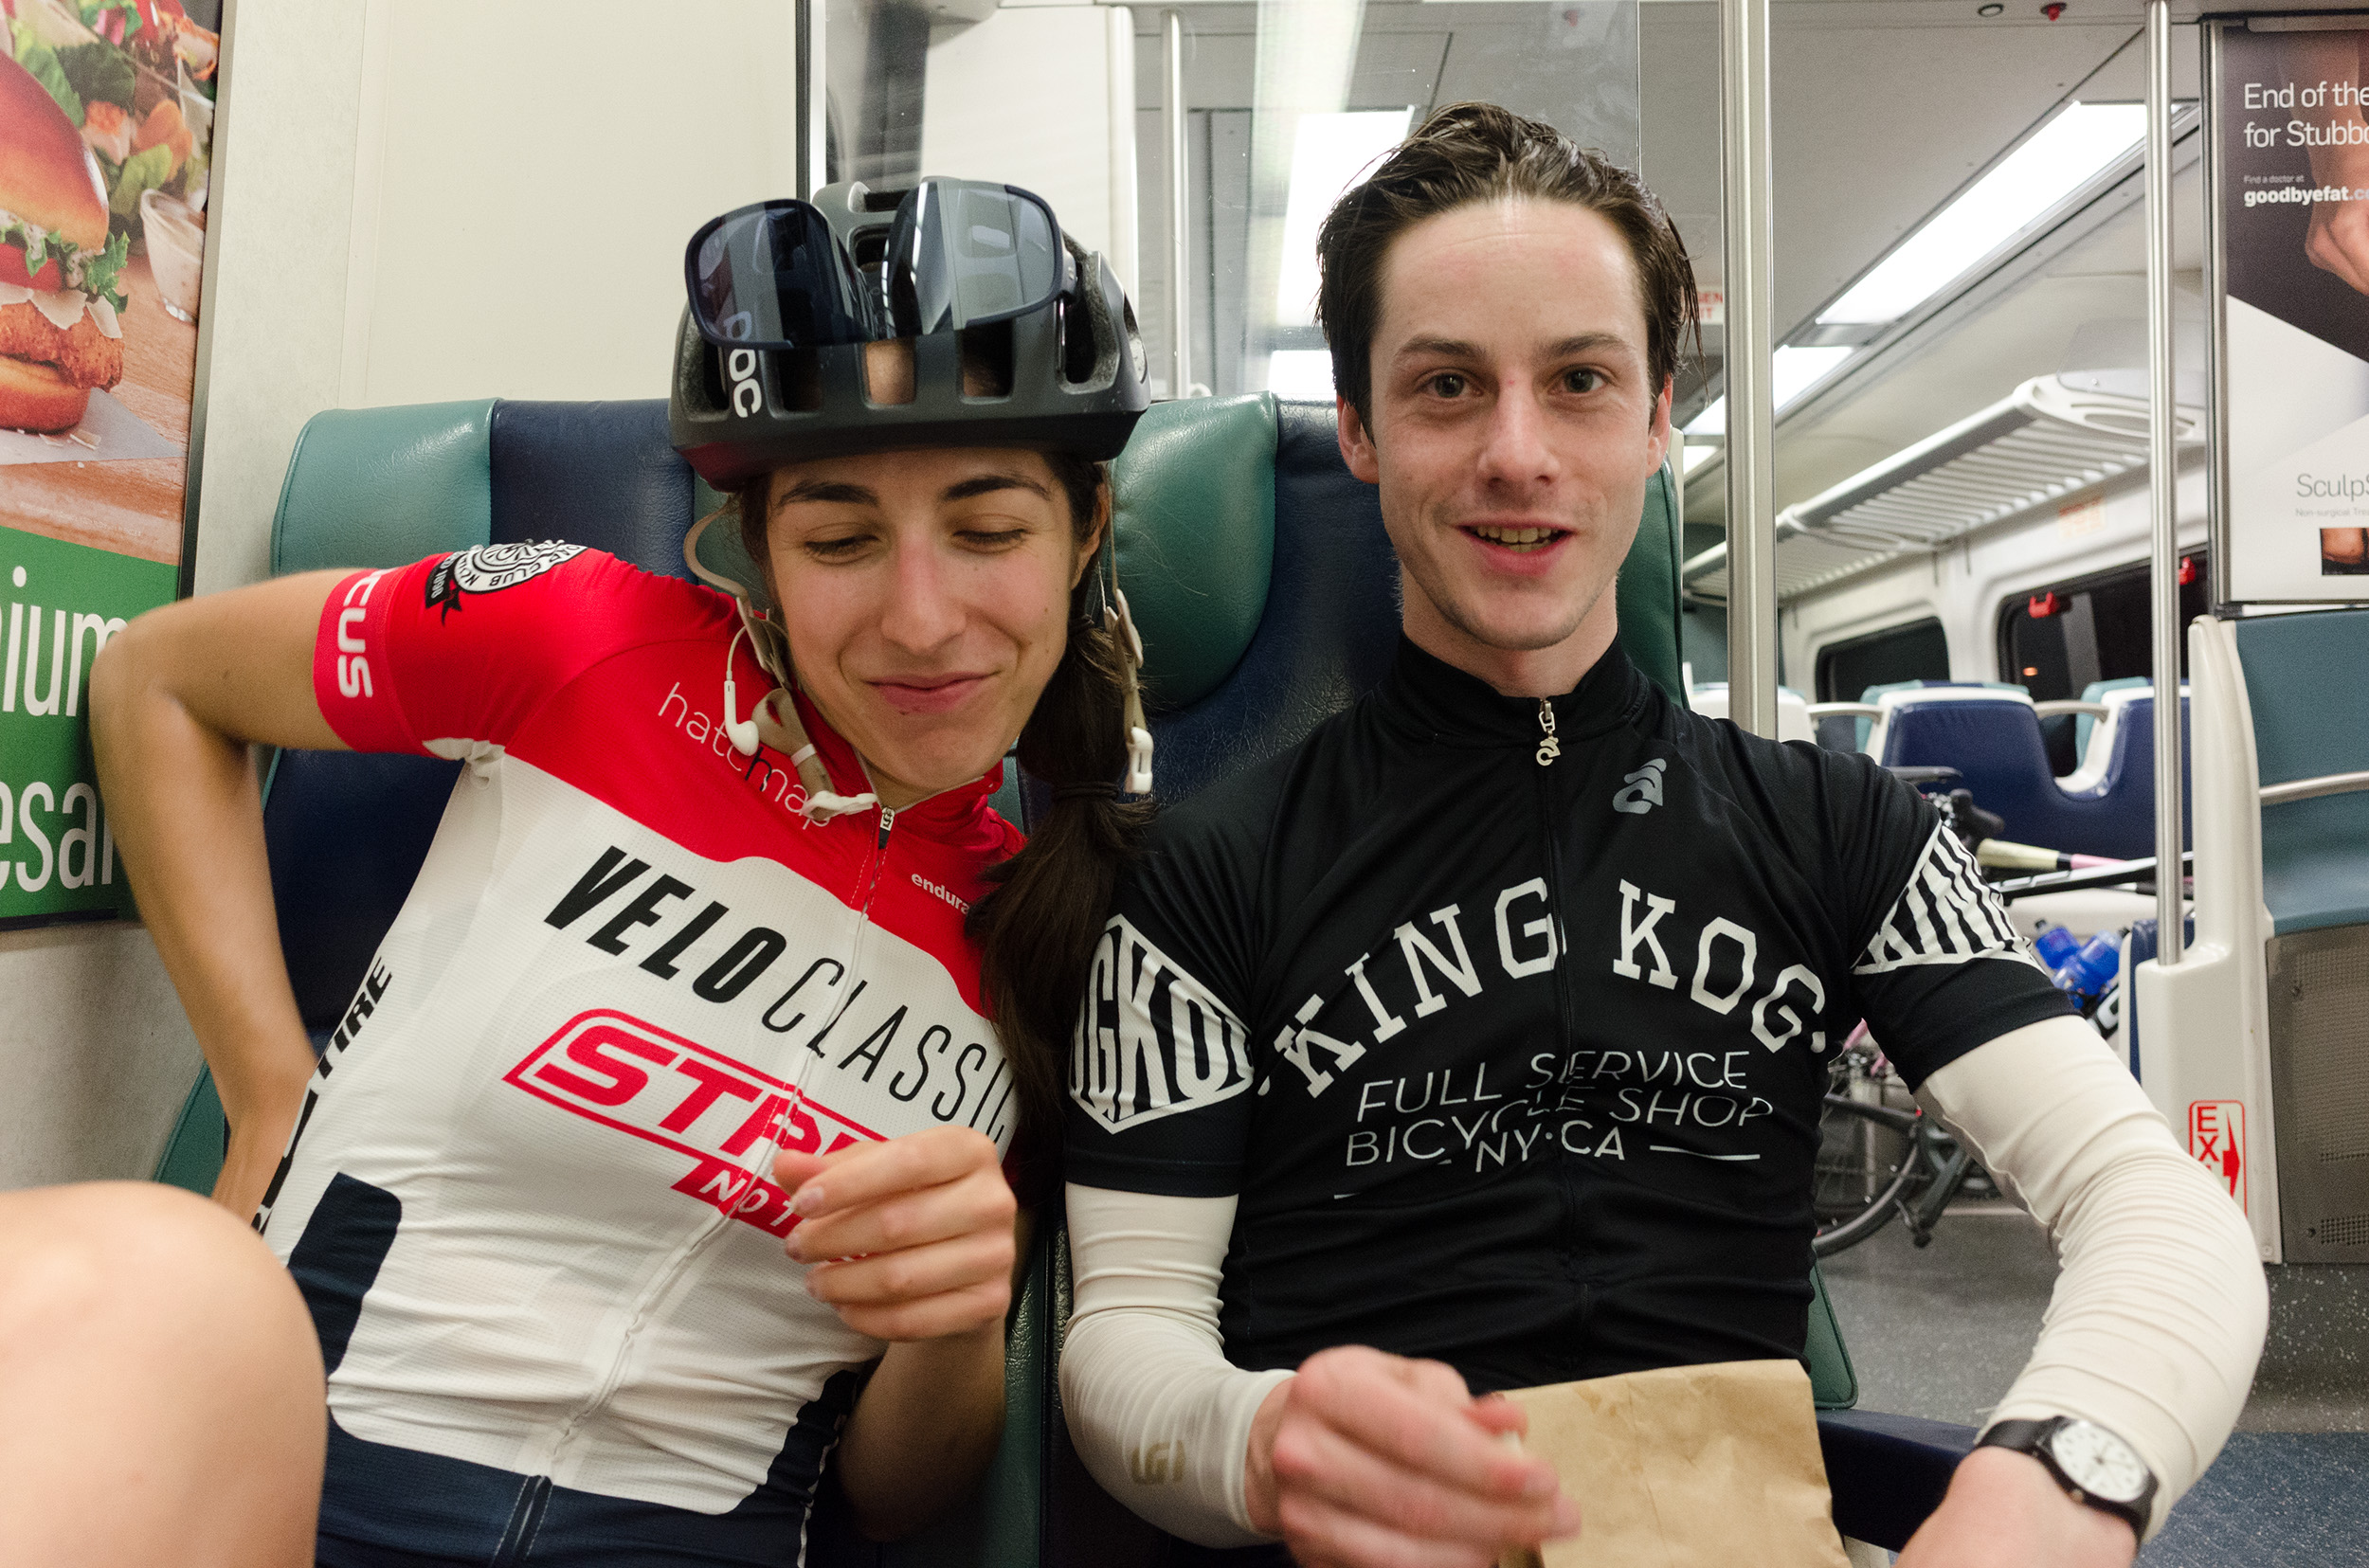 Ben and Natalie on the train